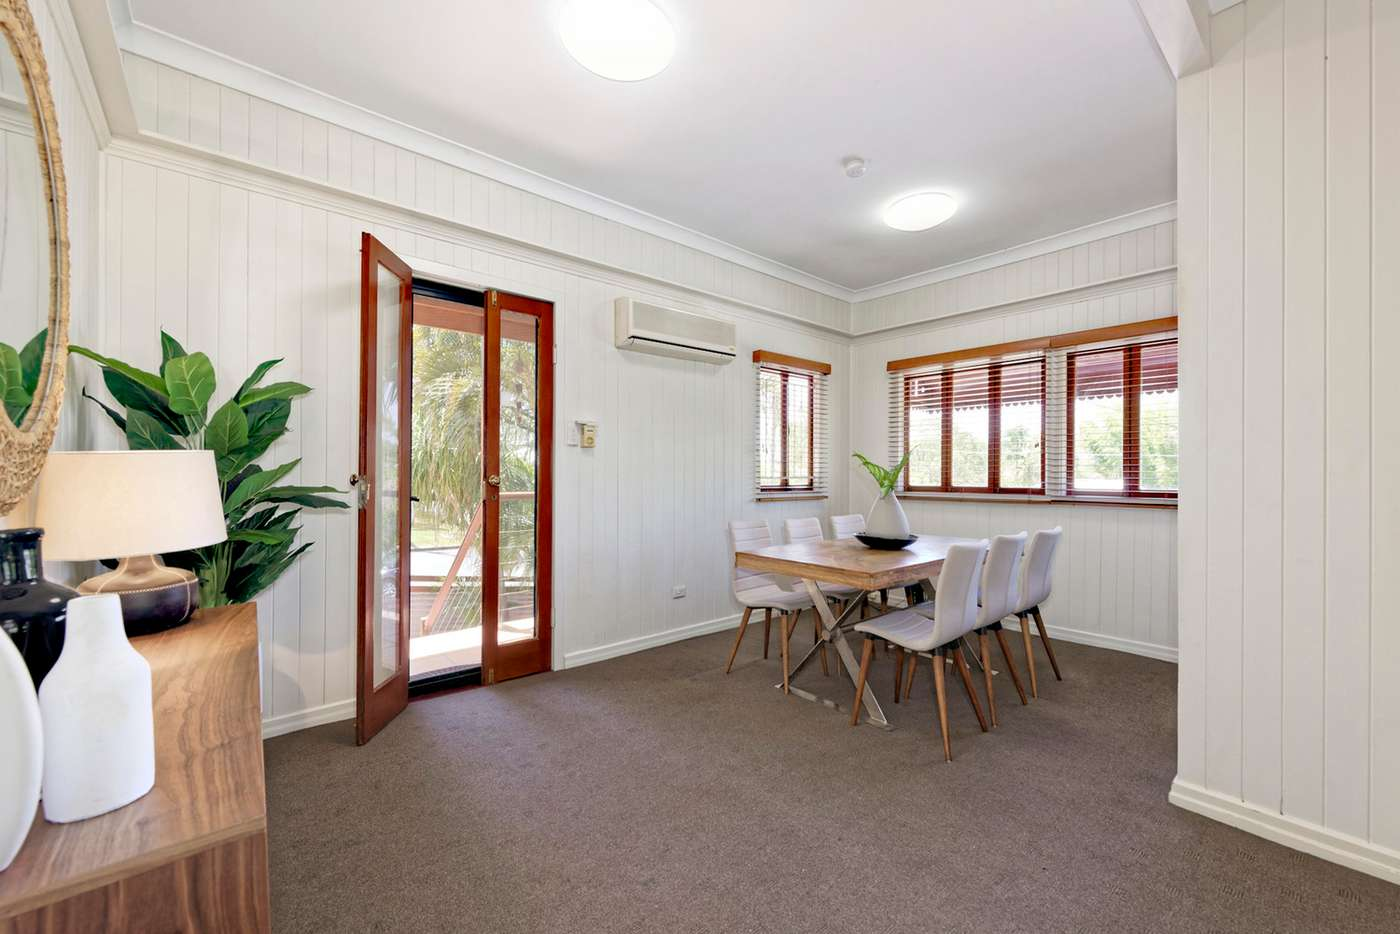 Fifth view of Homely house listing, 2 Dundonald Street, Everton Park QLD 4053